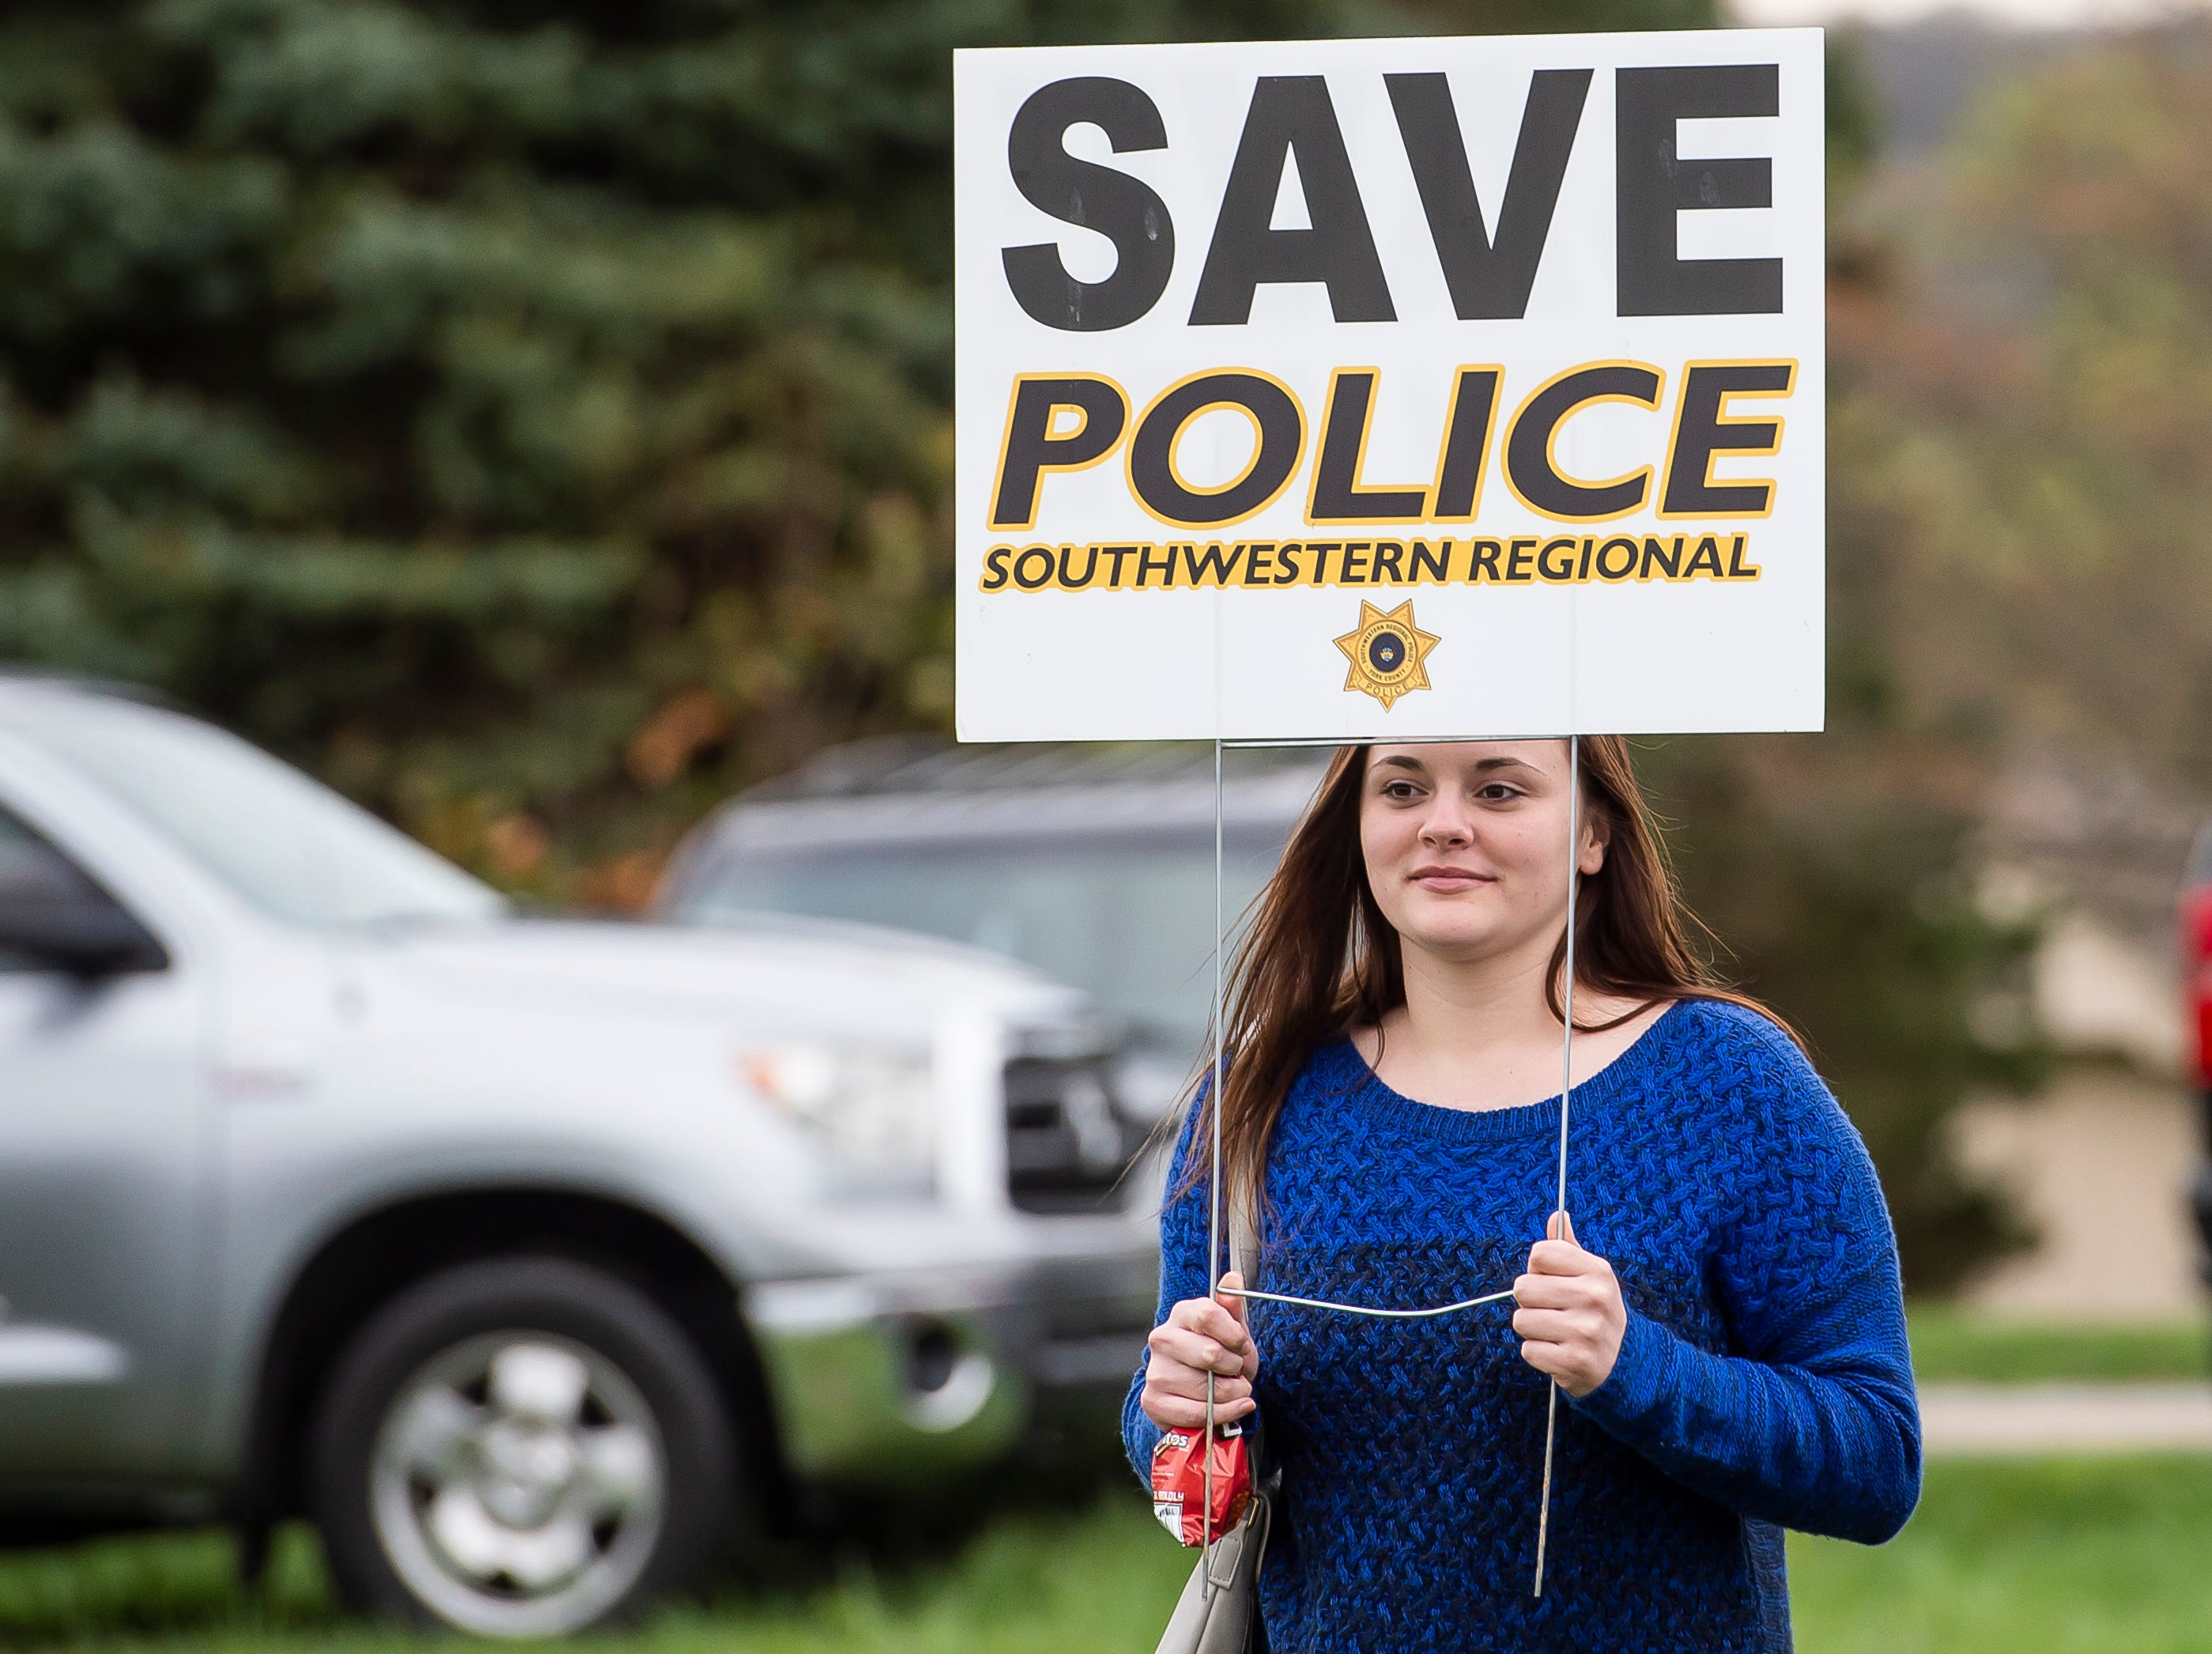 Brooklyn Blymier carries a sign in support of Southwestern Regional Police before the start of a North Codorus Township meeting on Tuesday, April 16, 2019.